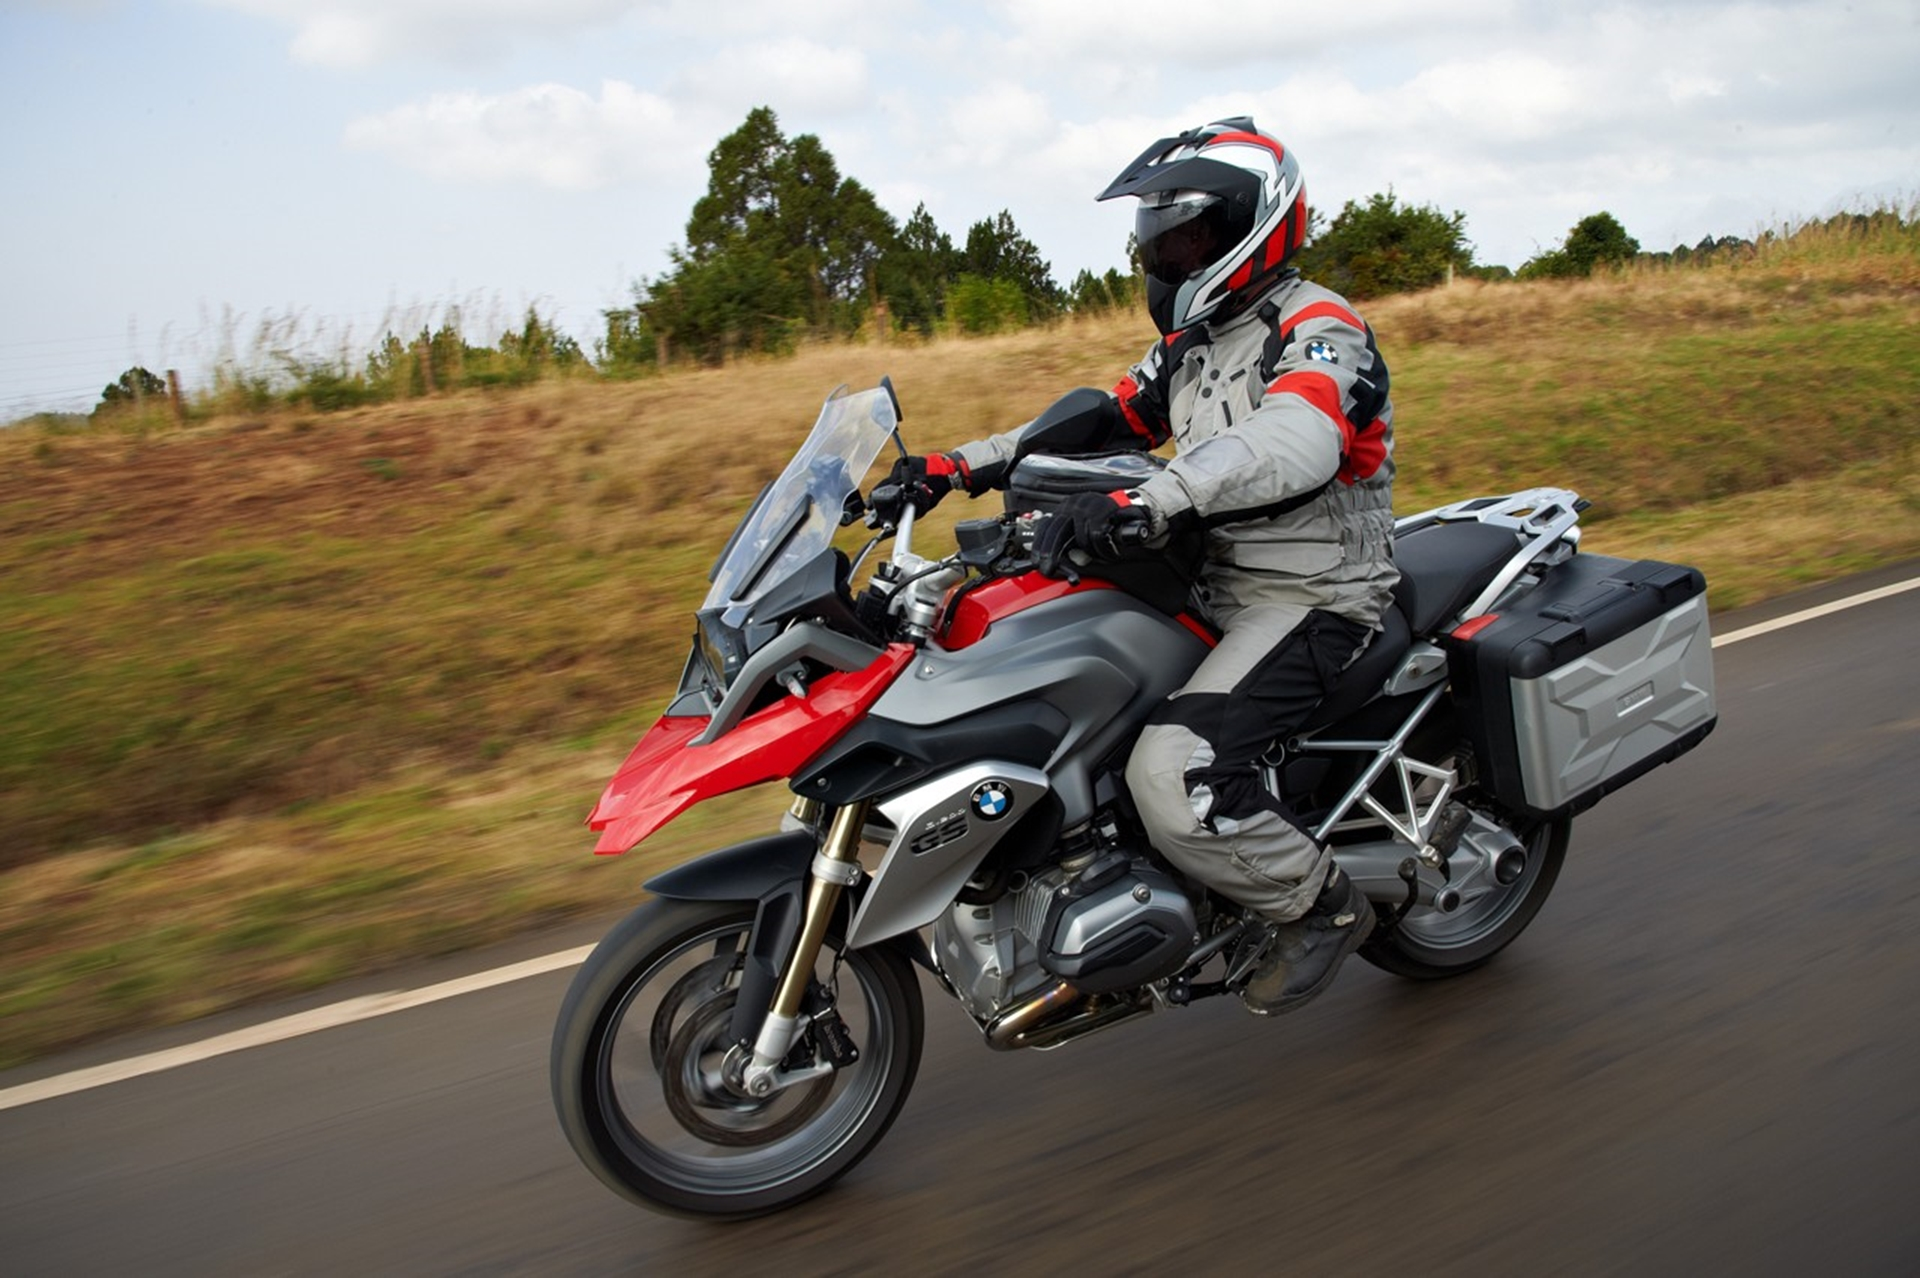 BMW R 1200 GS 2012 chassis